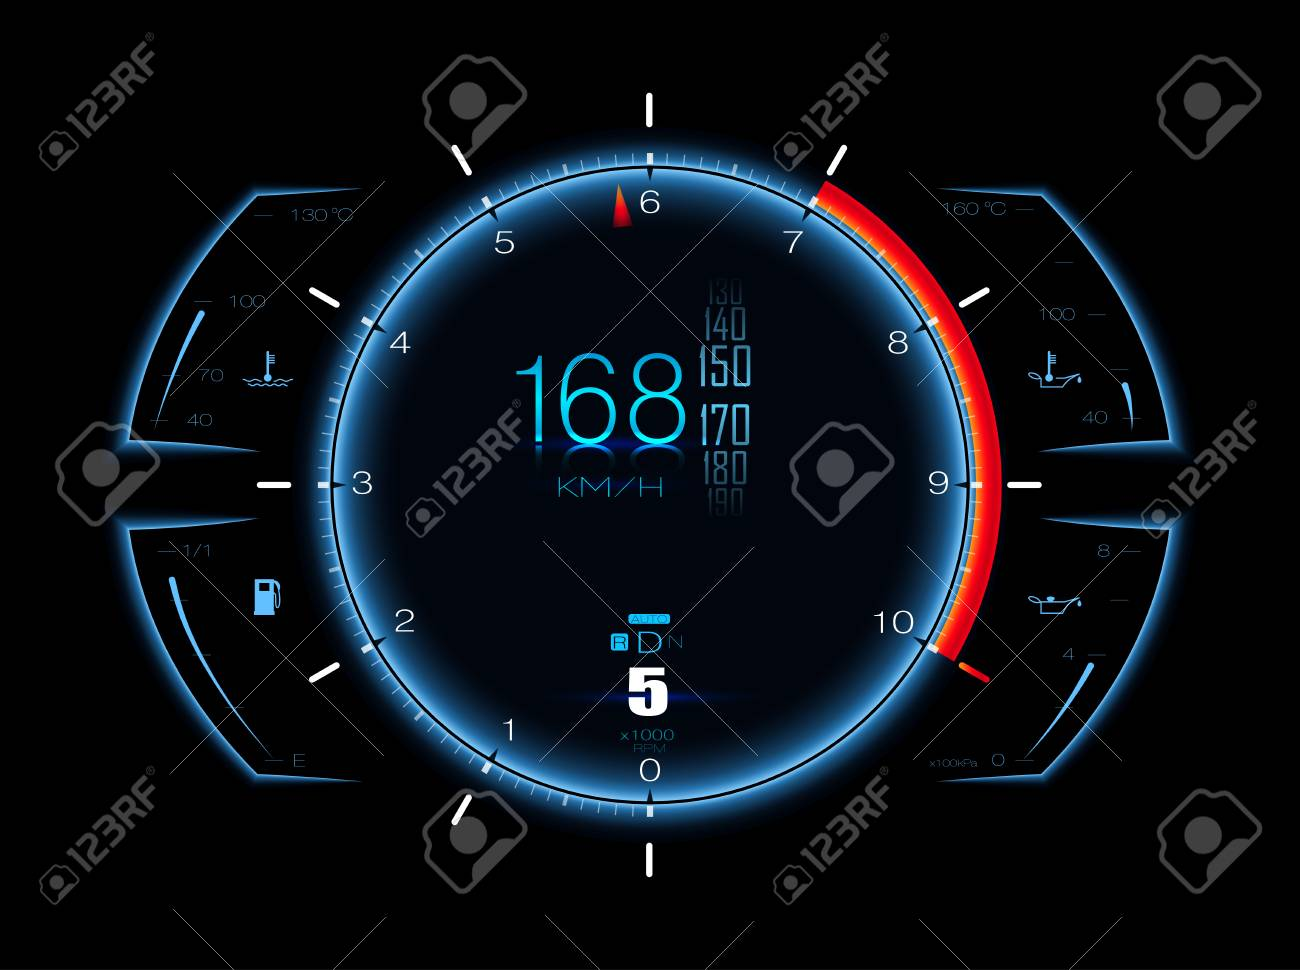 Realistic Sport Car Speed Meter Dashboard Lights Royalty Free